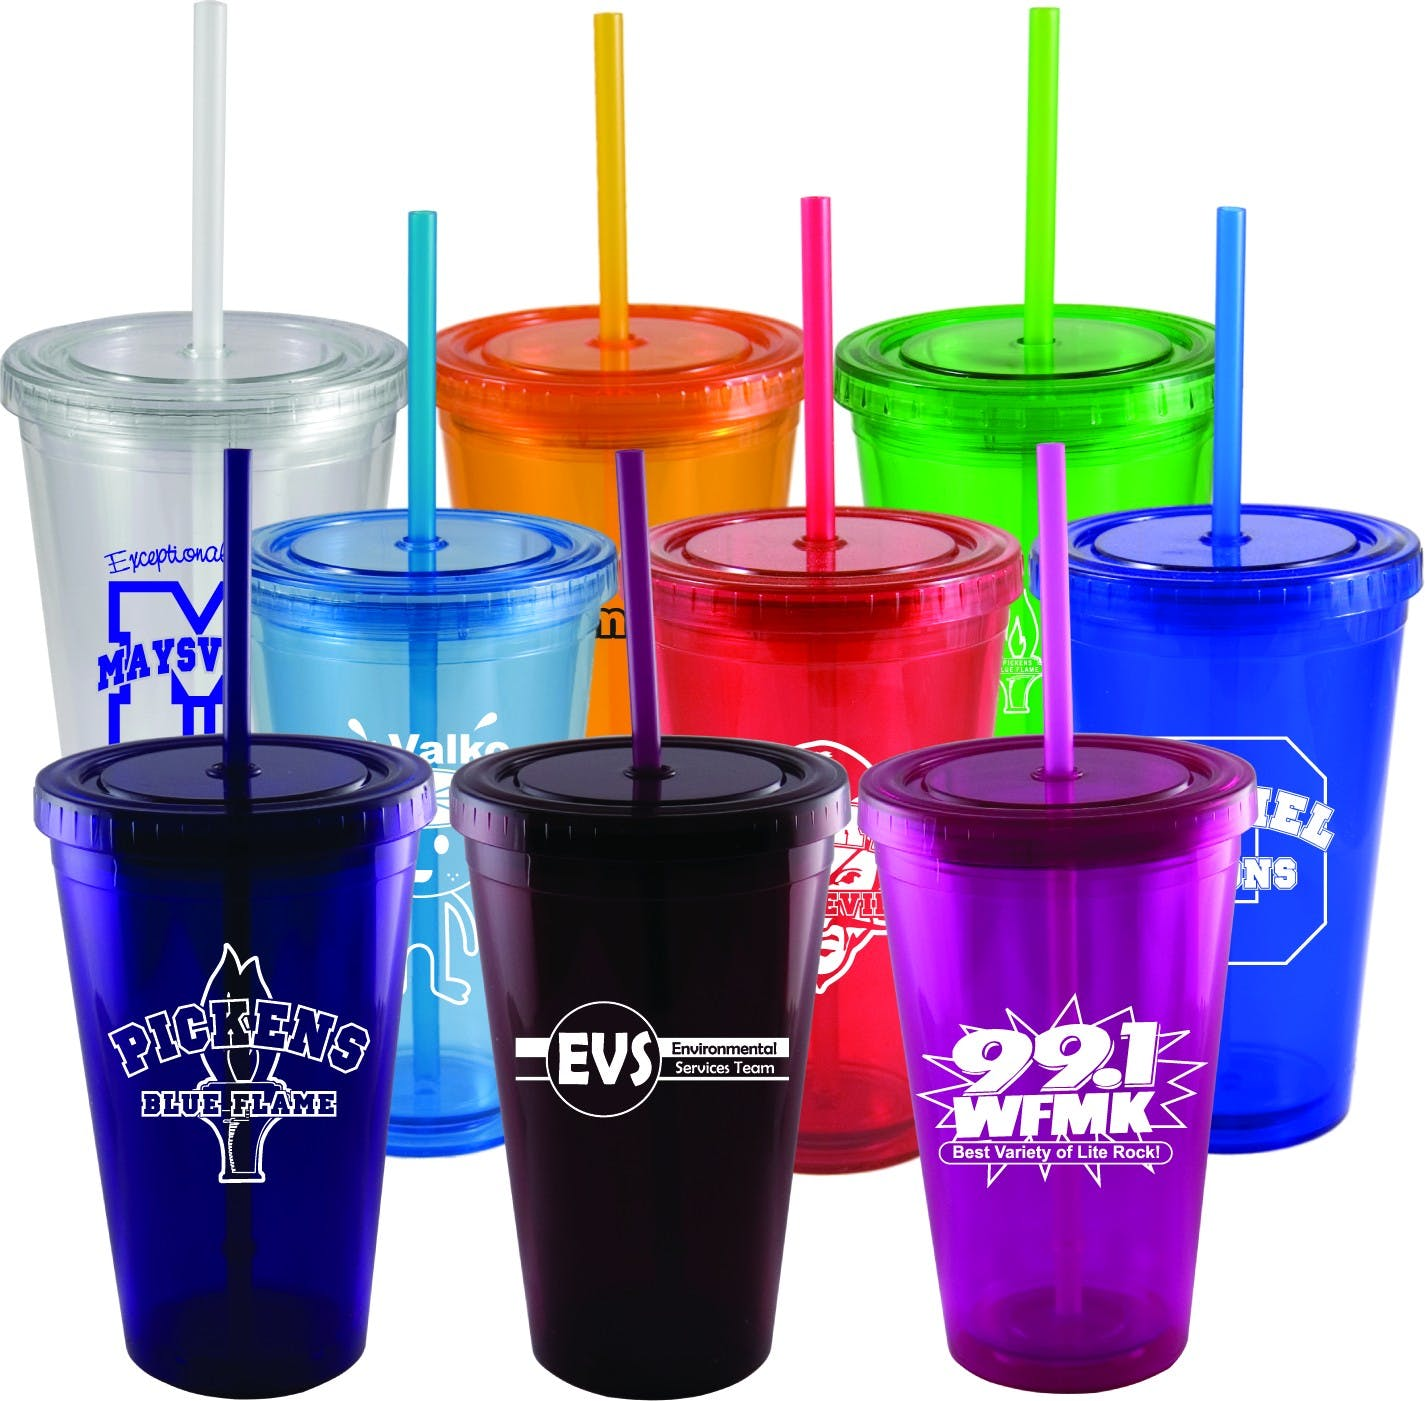 16 oz. Double Wall Tumbler Plastic cup sold by Prestige Glassware